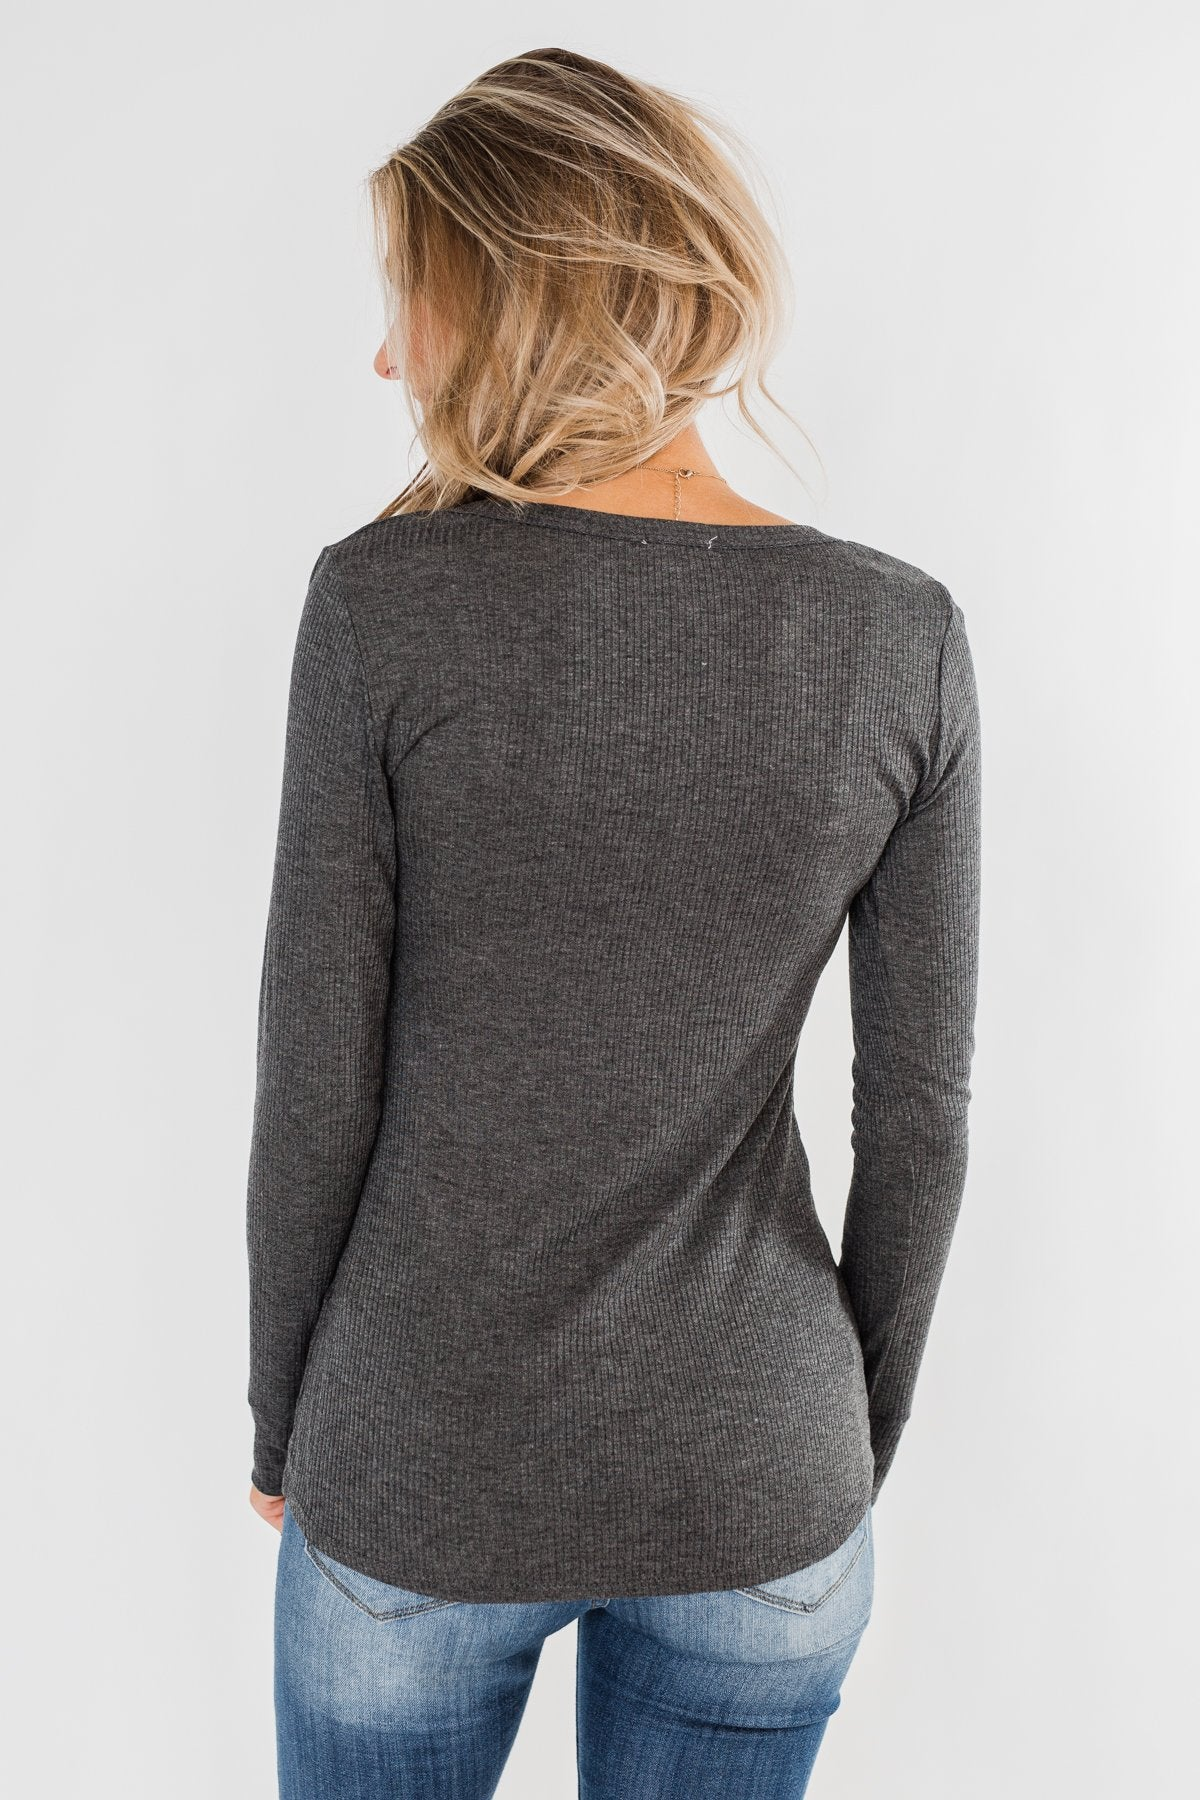 Snap Button Henley Top- Charcoal